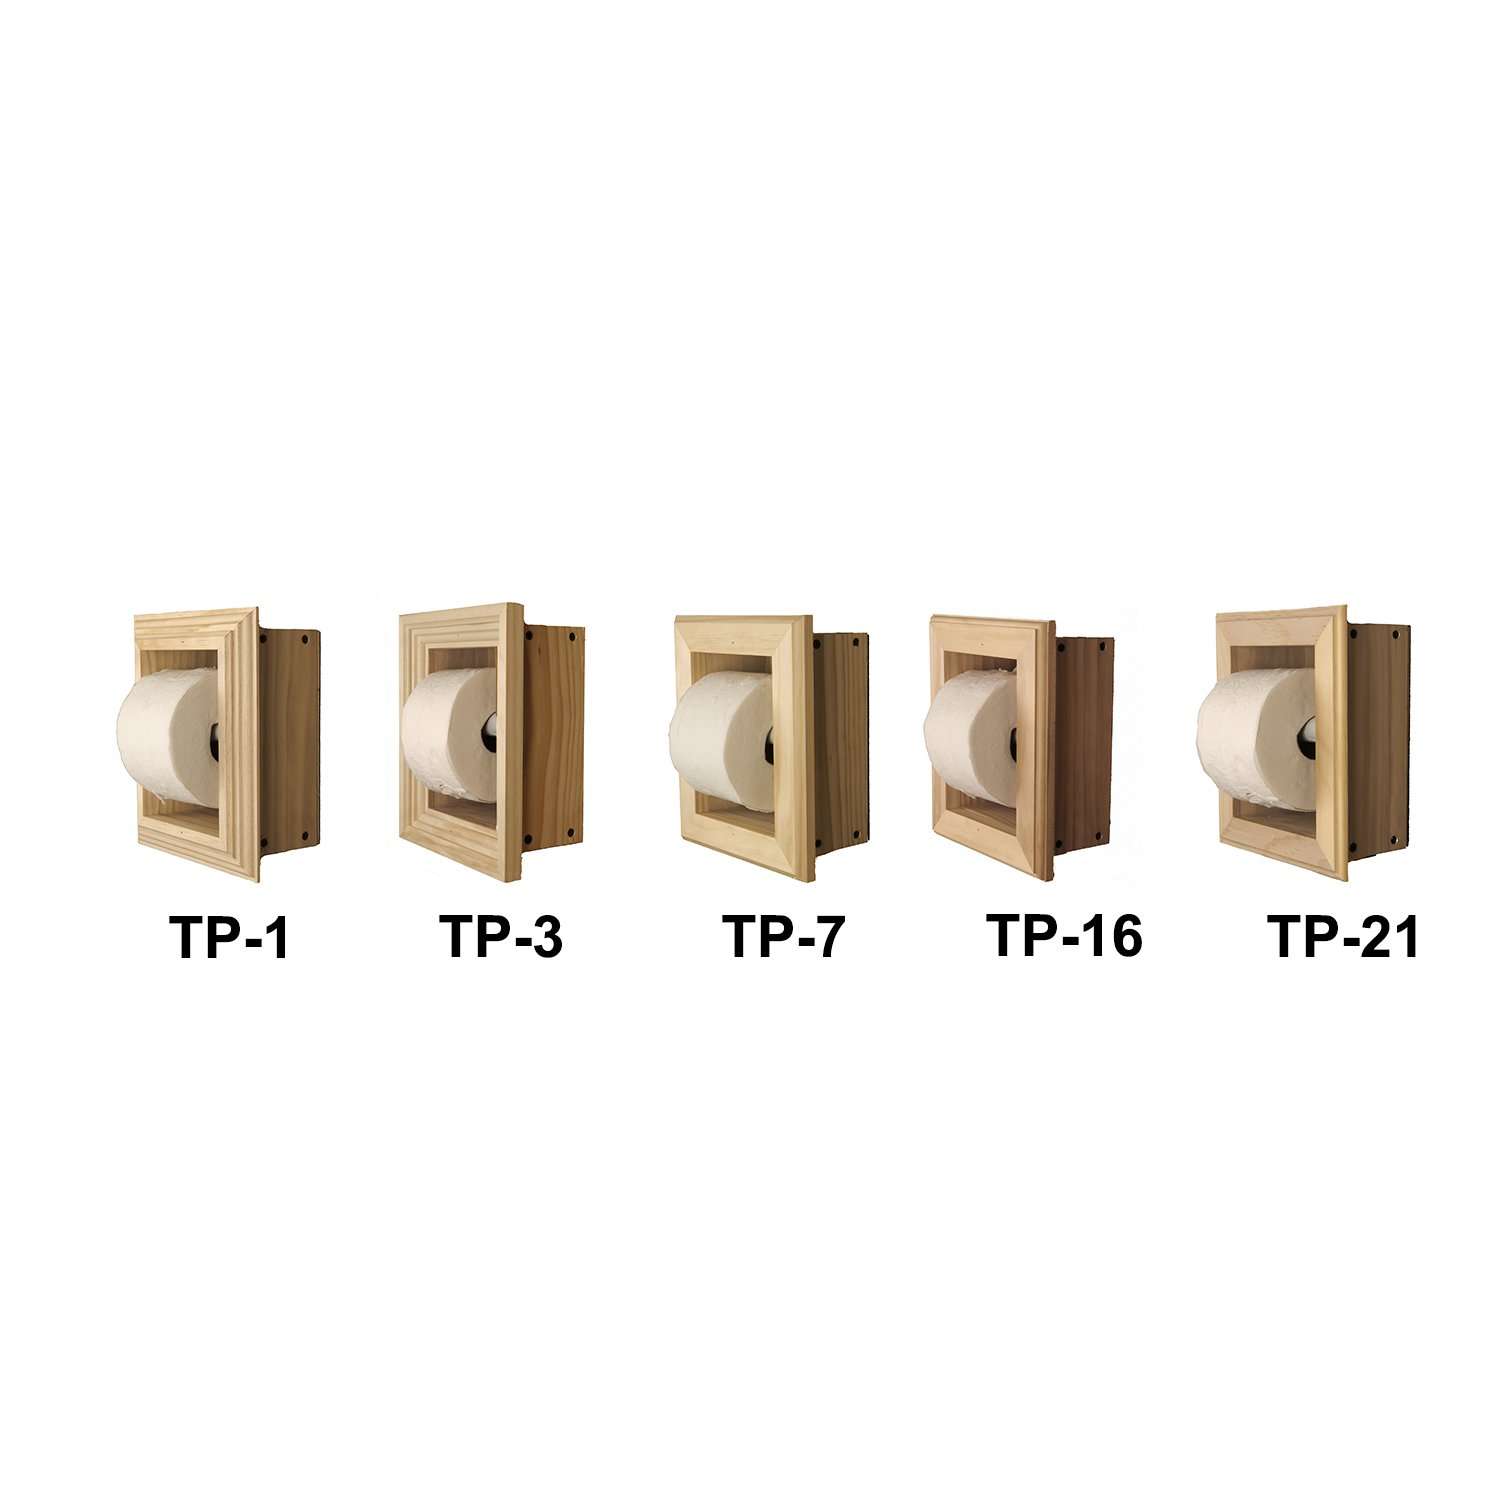 WG Wood Products Solid Wood Recessed wall Bathroom Toilet Paper Holder in Multiple Finishes, Primed/Ready To Paint